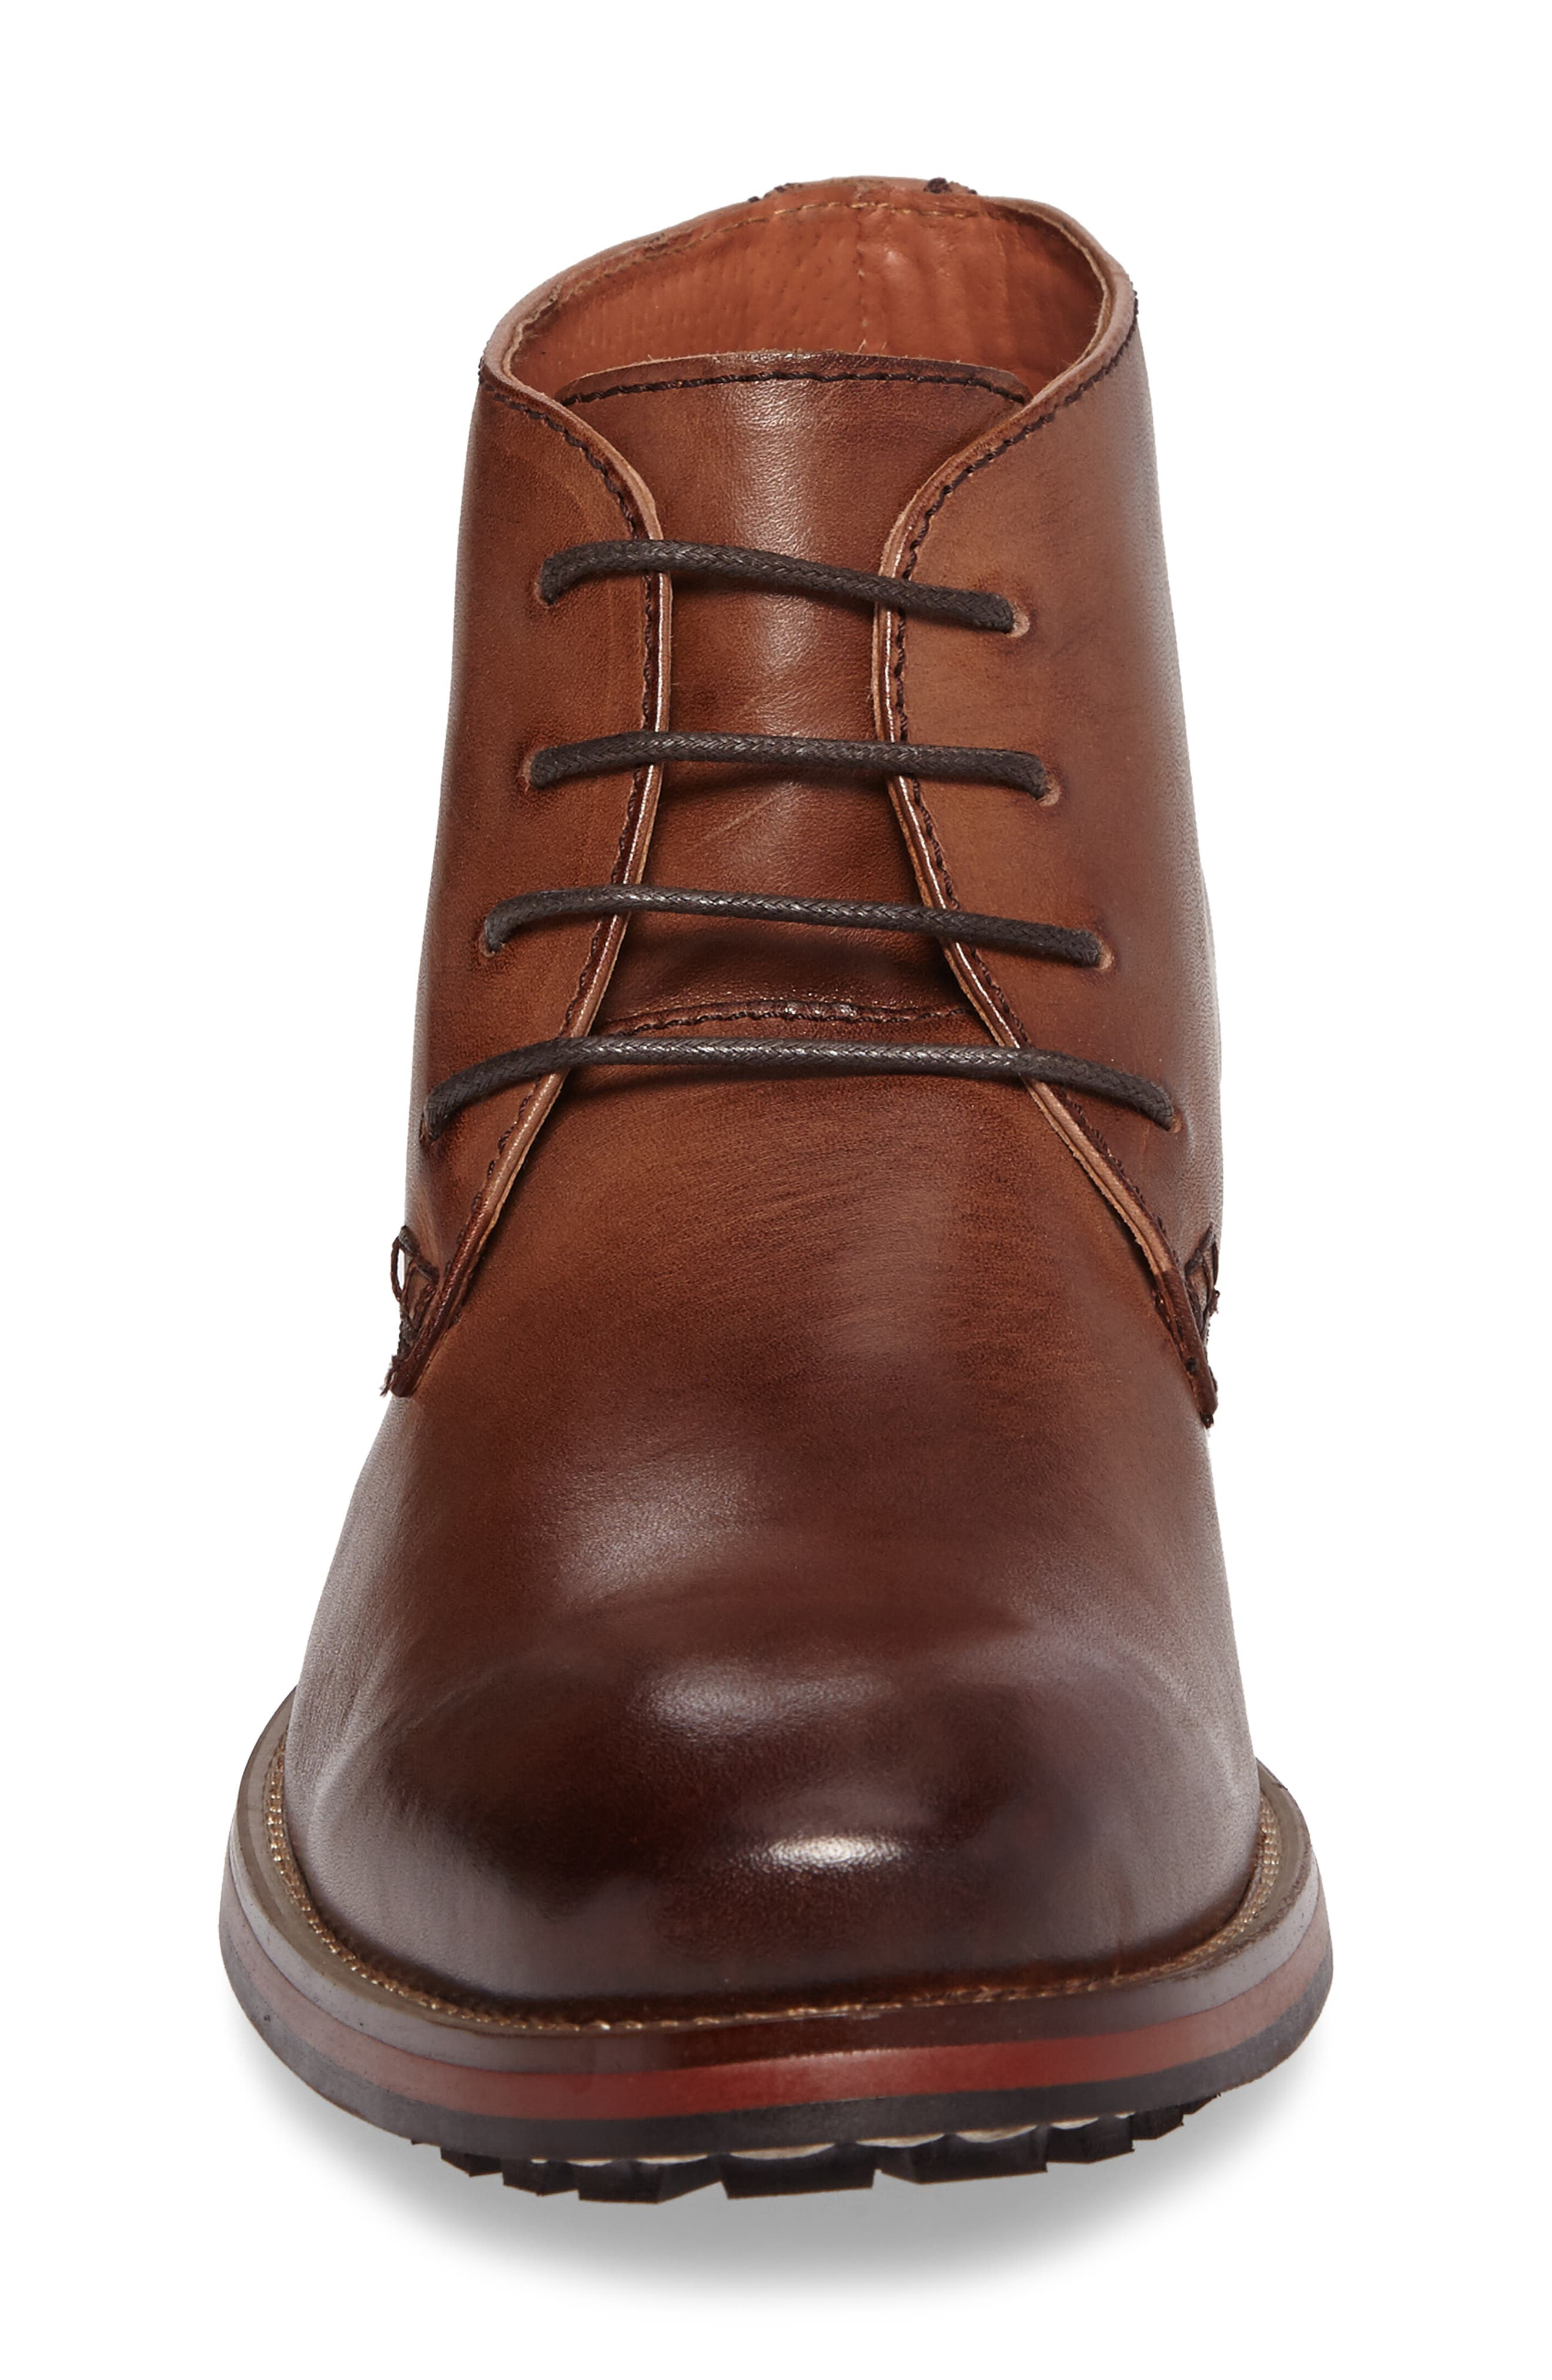 Kennison Chukka Boot,                             Alternate thumbnail 4, color,                             Brown